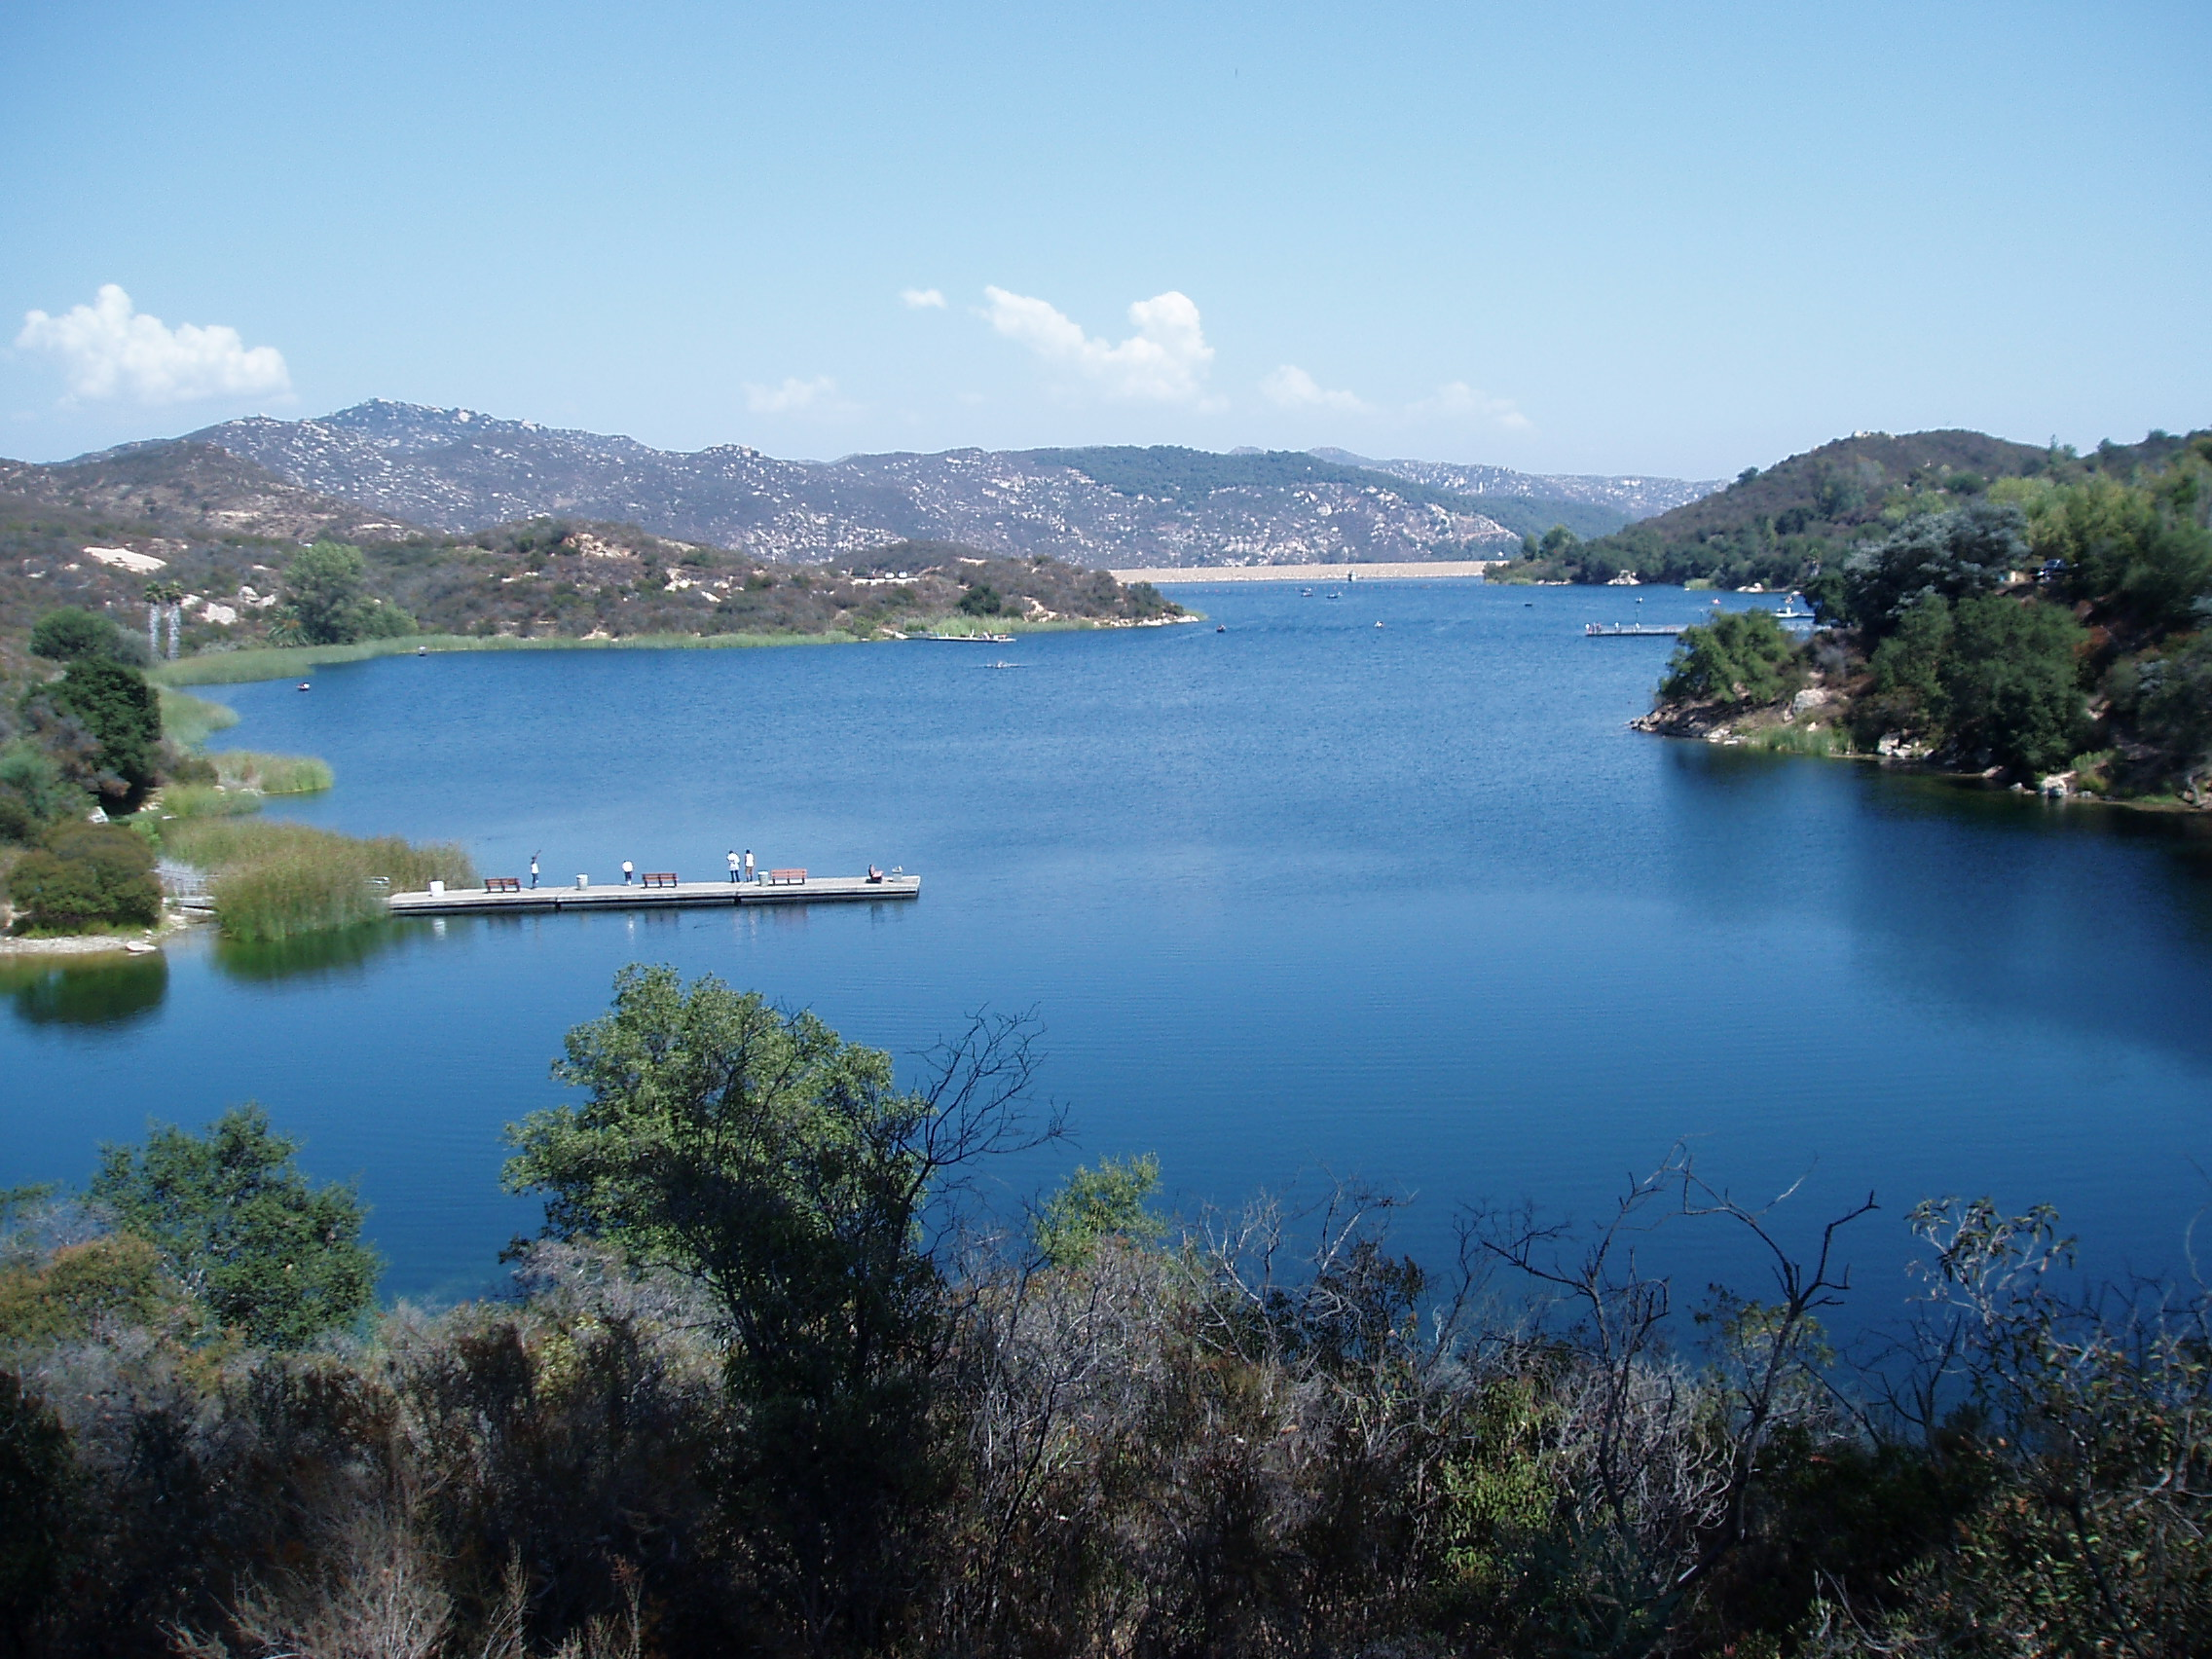 Dixon Lake in Escondido. A great getaway that's only an hour away from San Diego. There's fishing, hiking, camping, picnicking and paddle boating, not to mention great photo opportunities.